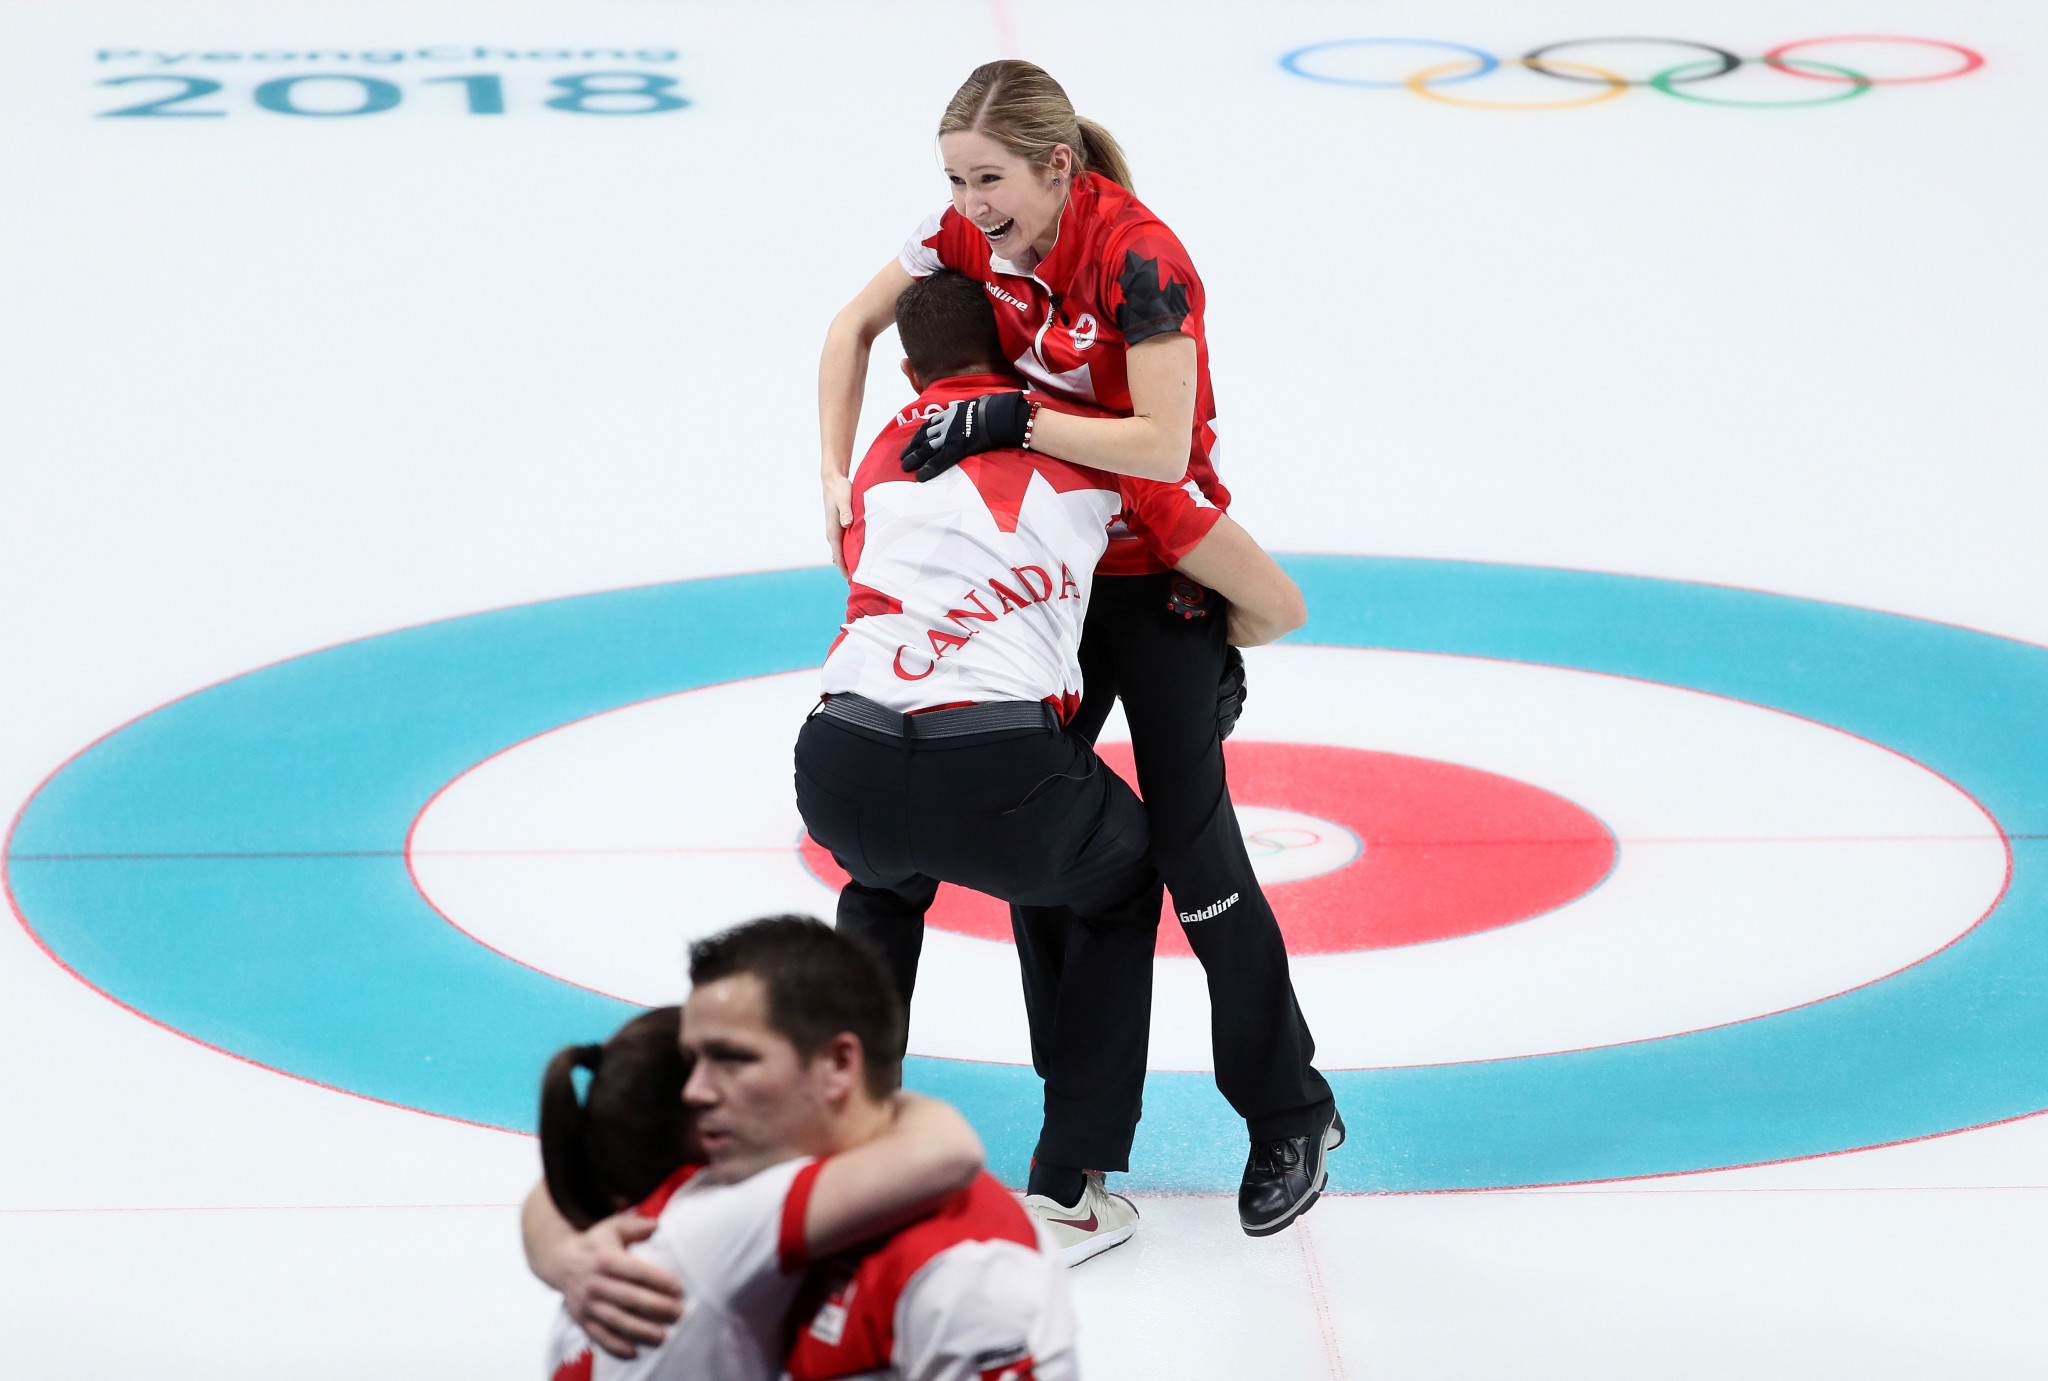 Canada celebrate winning the first ever mixed doubles curling title ©Getty Images